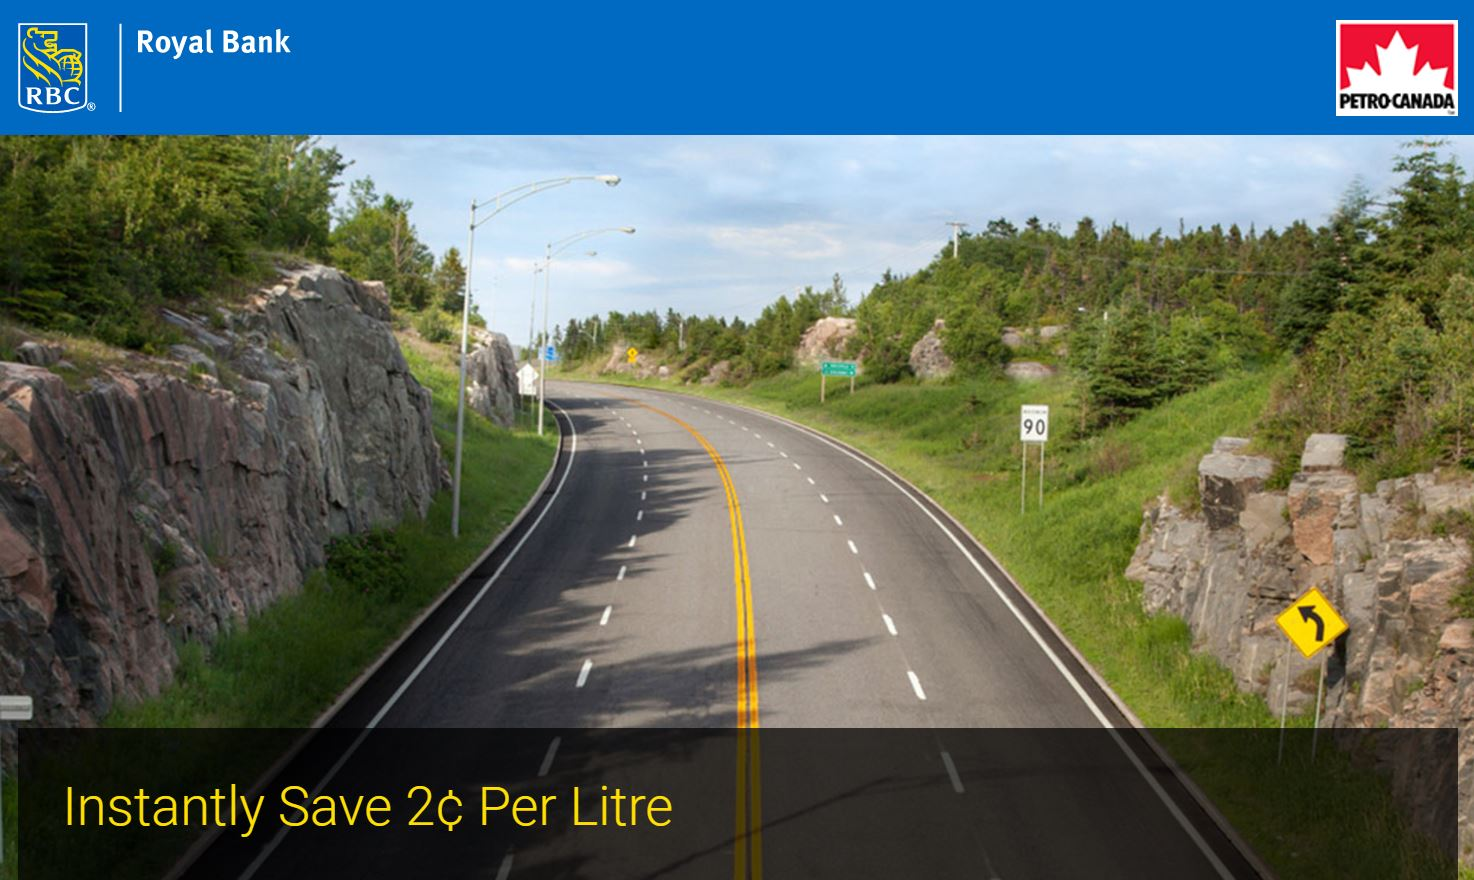 Use RBC credit cards at Petro-Canada and save 2 cents/liter - Miles